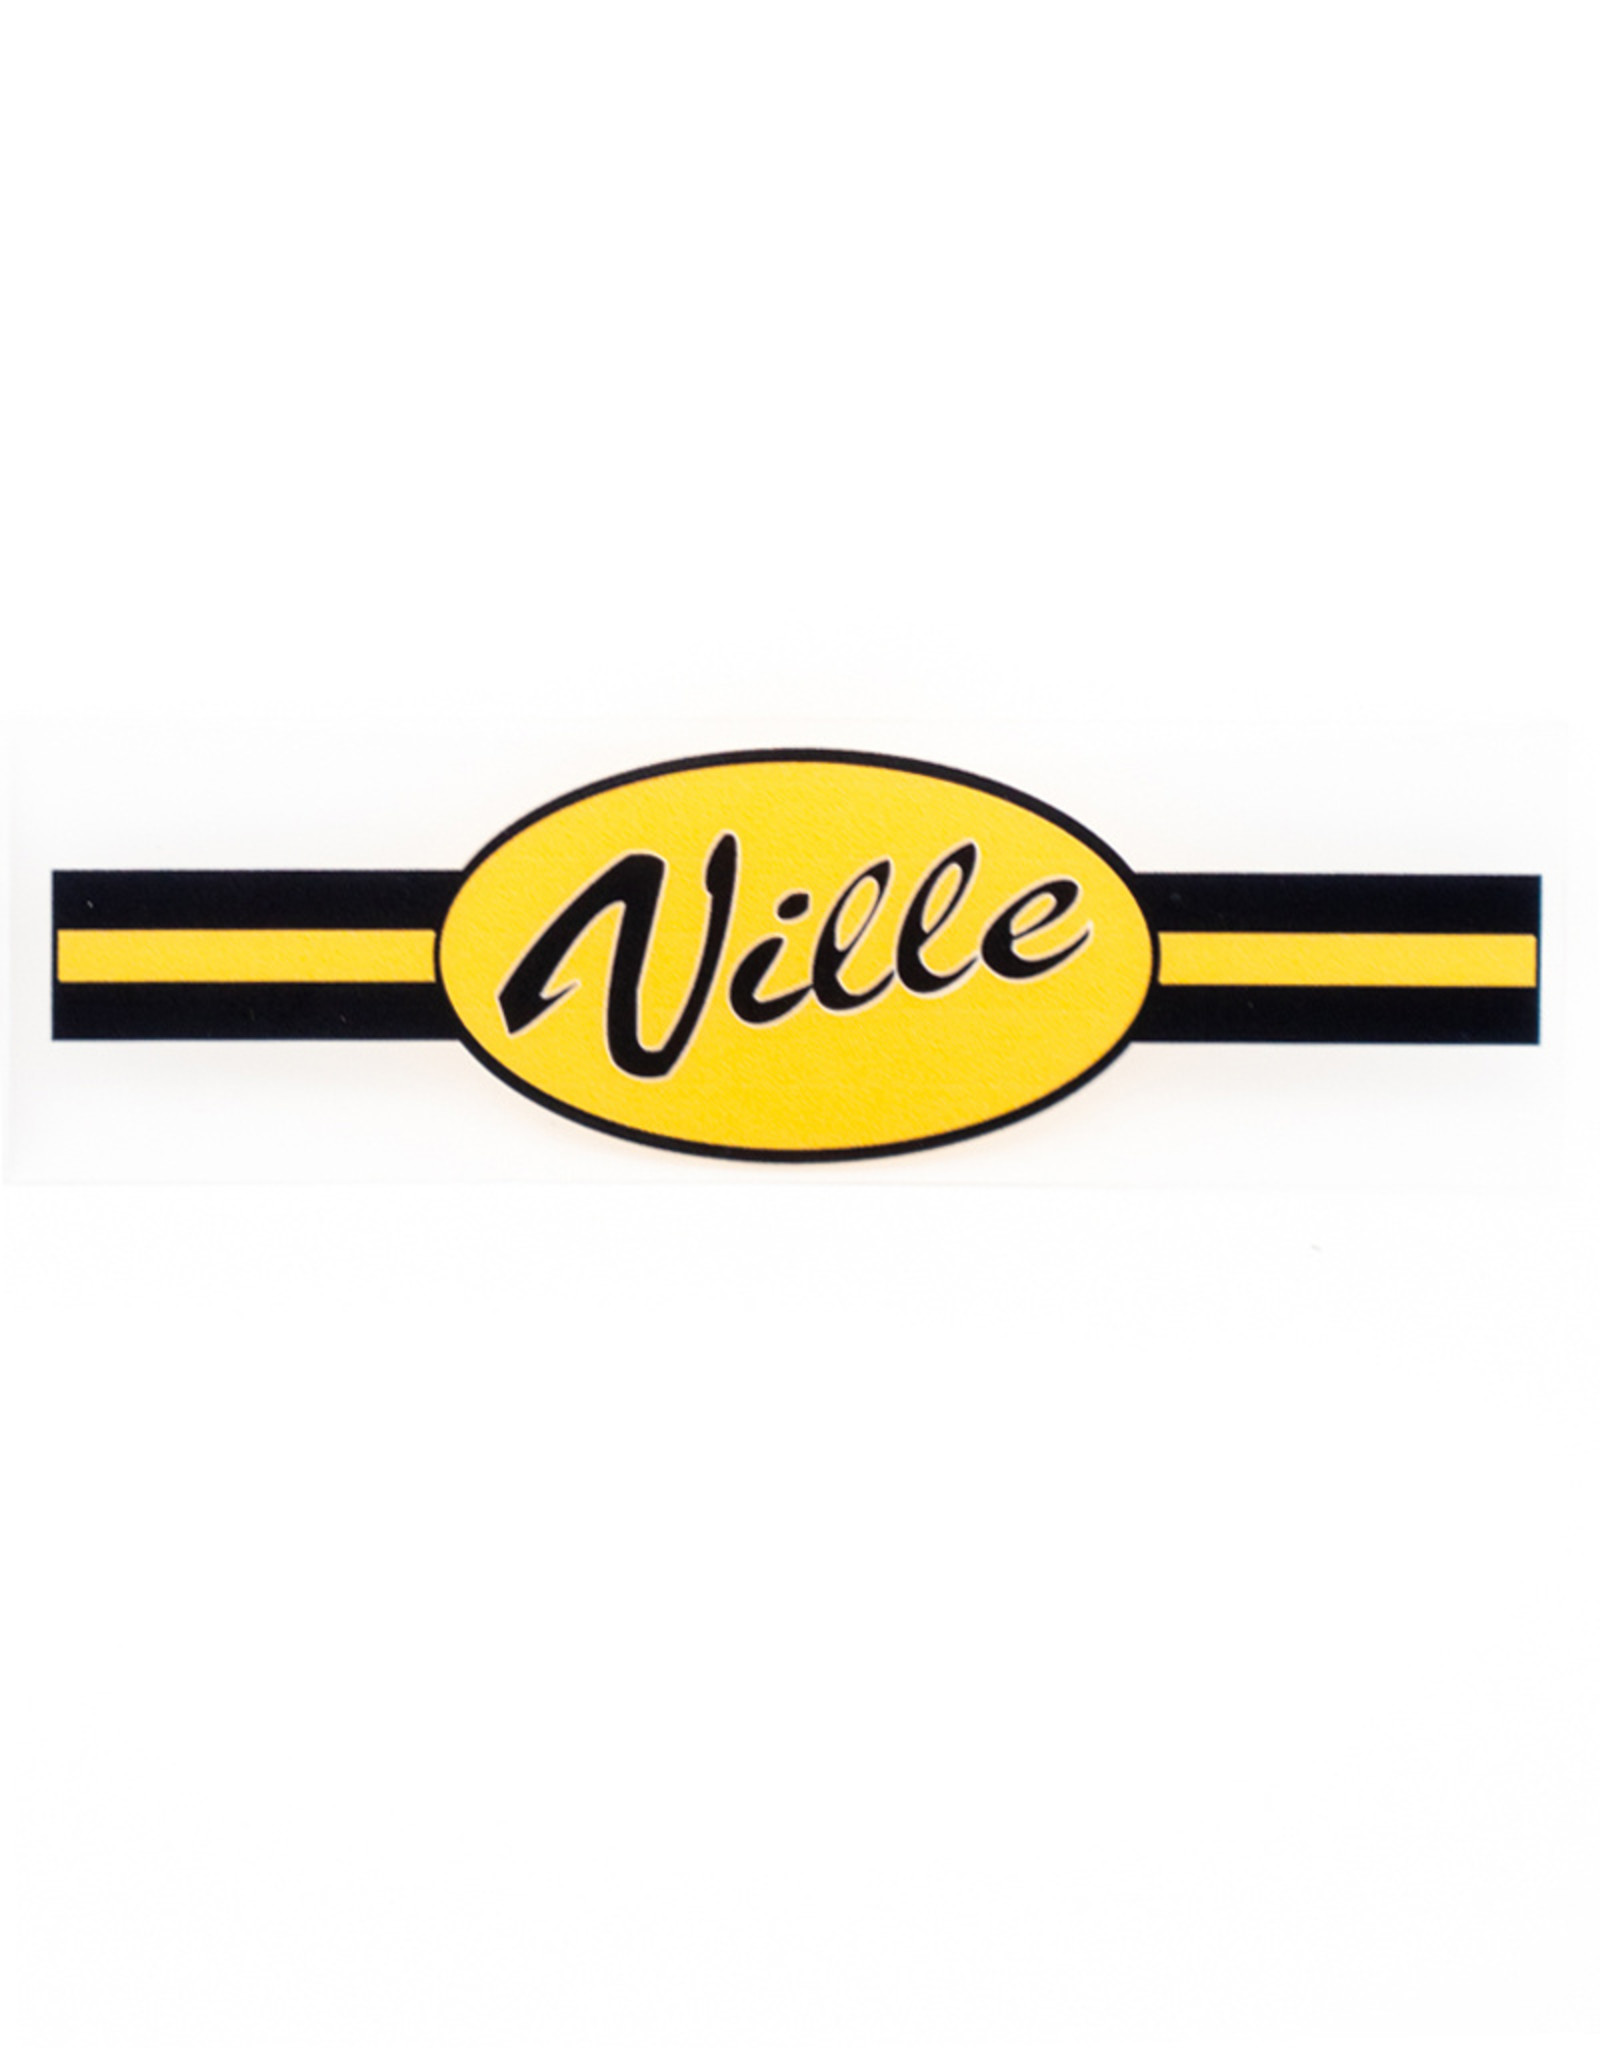 Ville Static Cling Decal